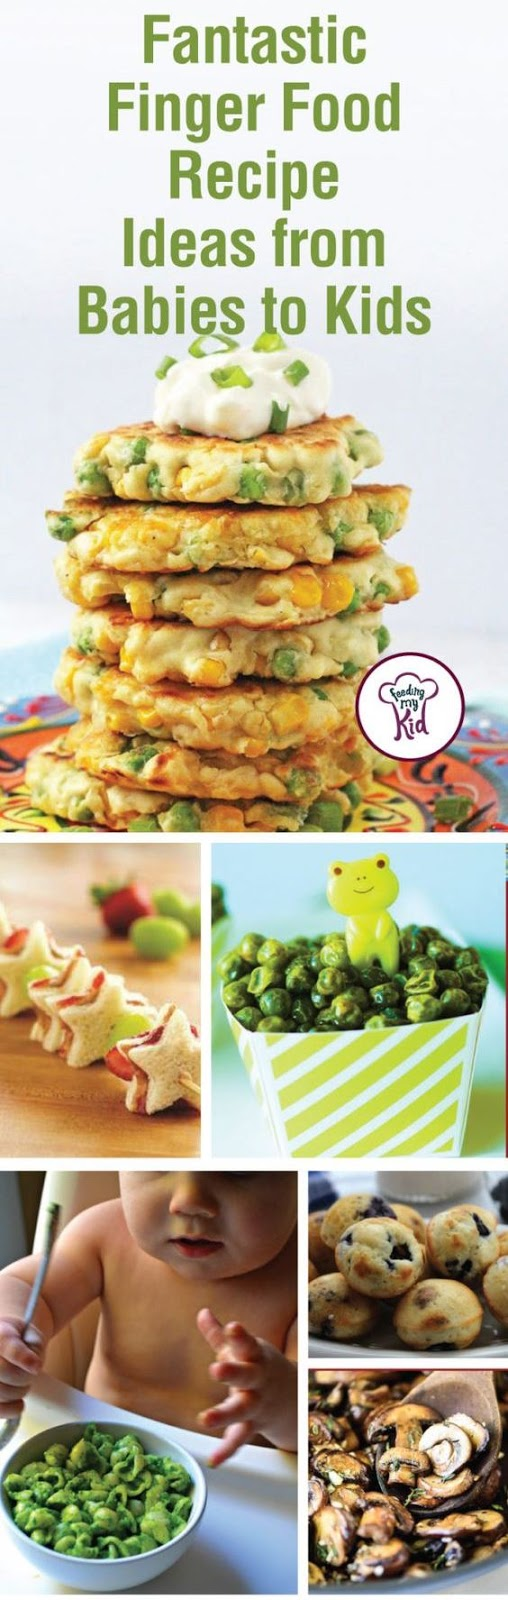 Fantastic Finger Food Recipe Ideas from Babies to Kids